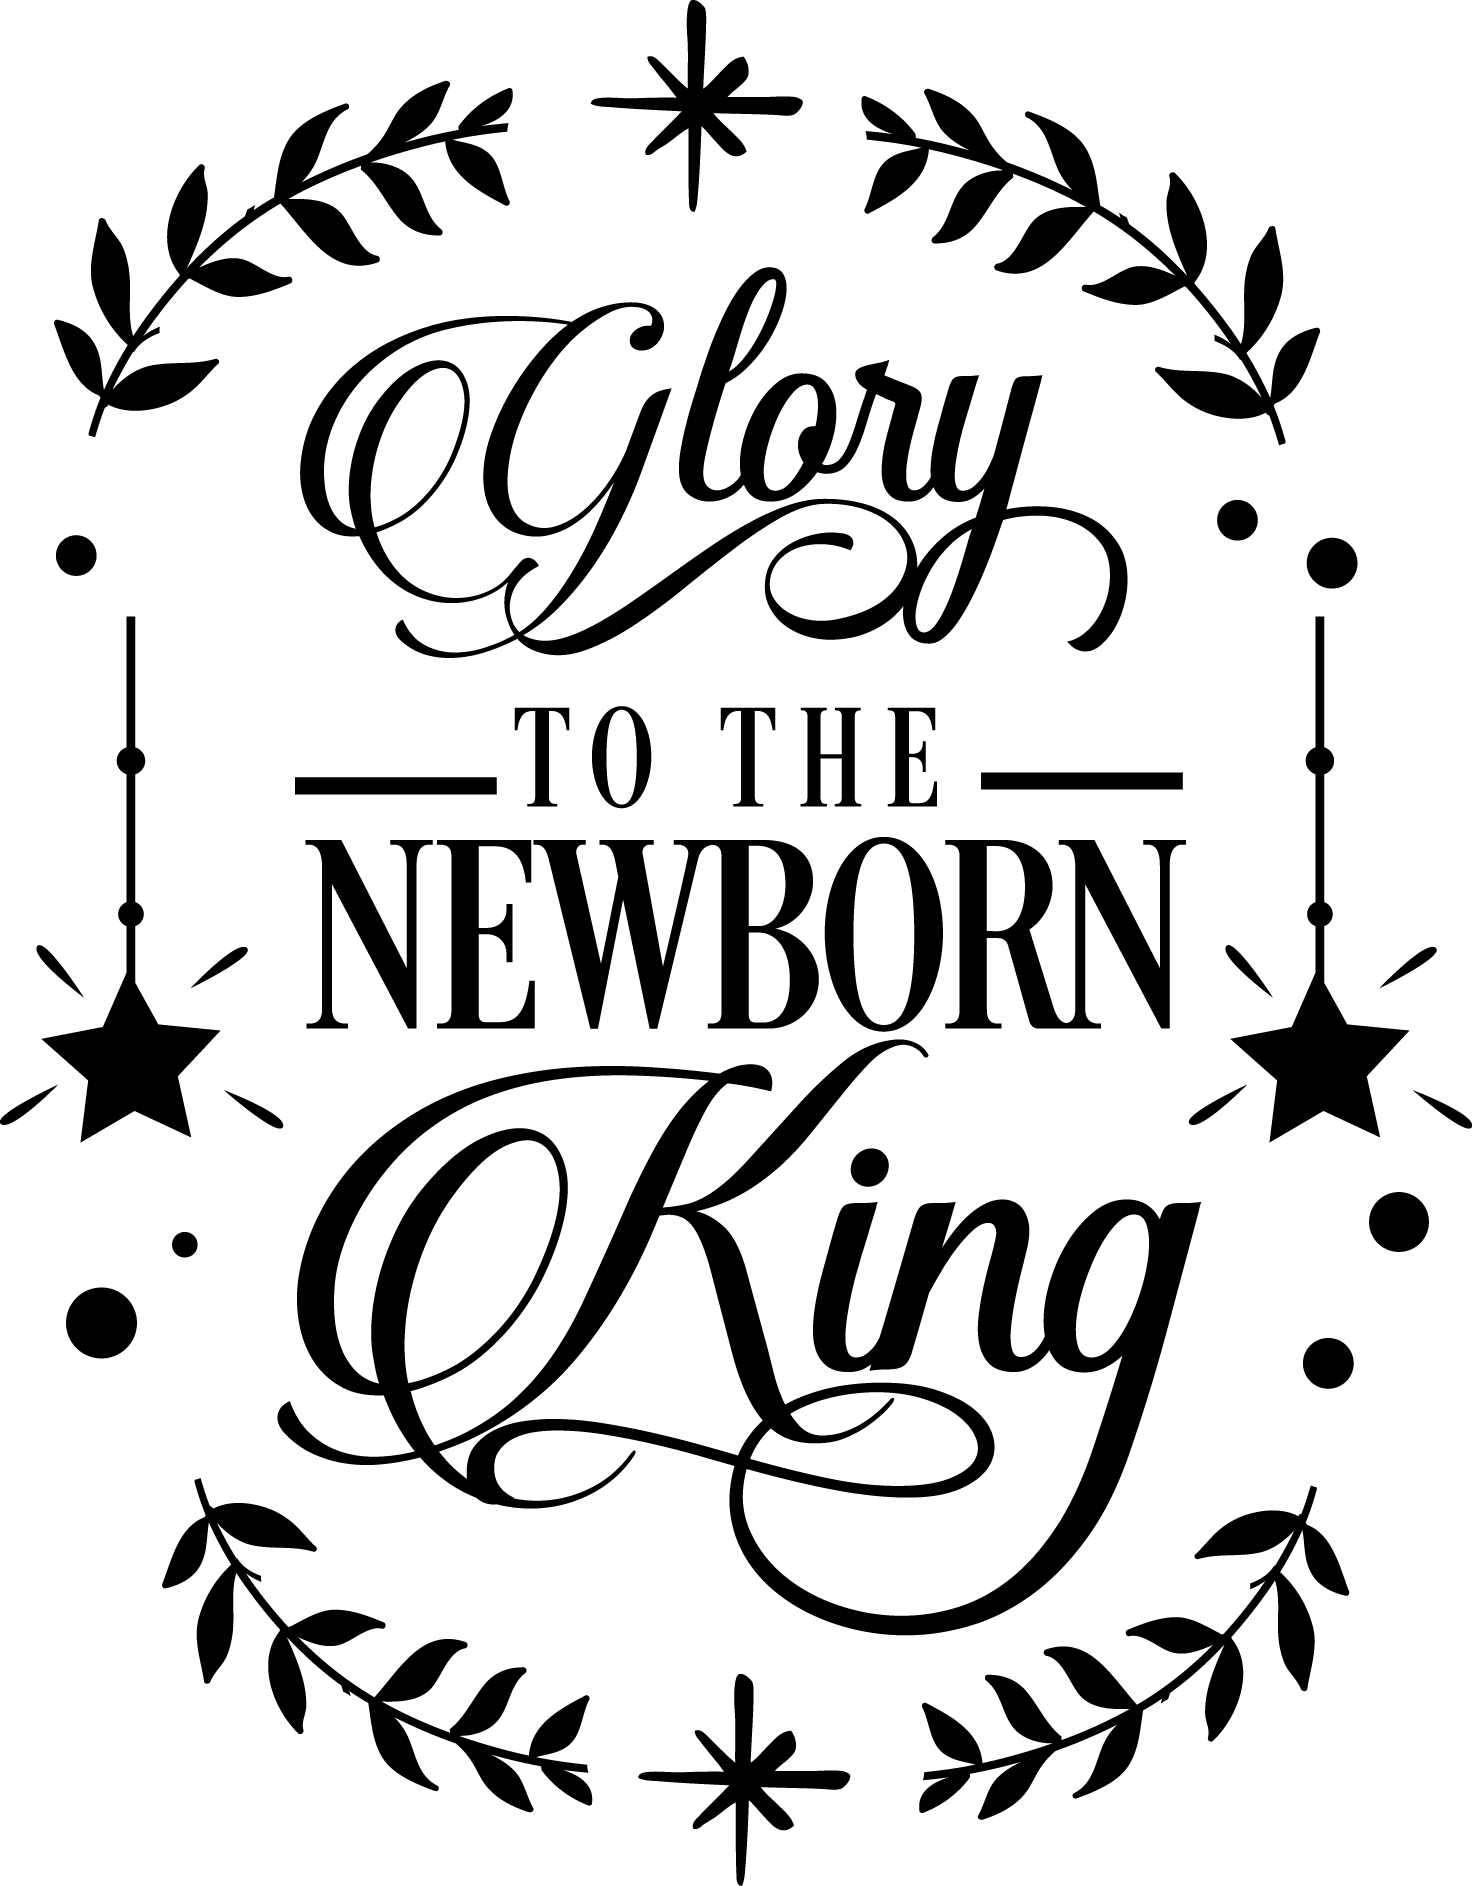 Copy of MB-Seas-Glory to Newborn